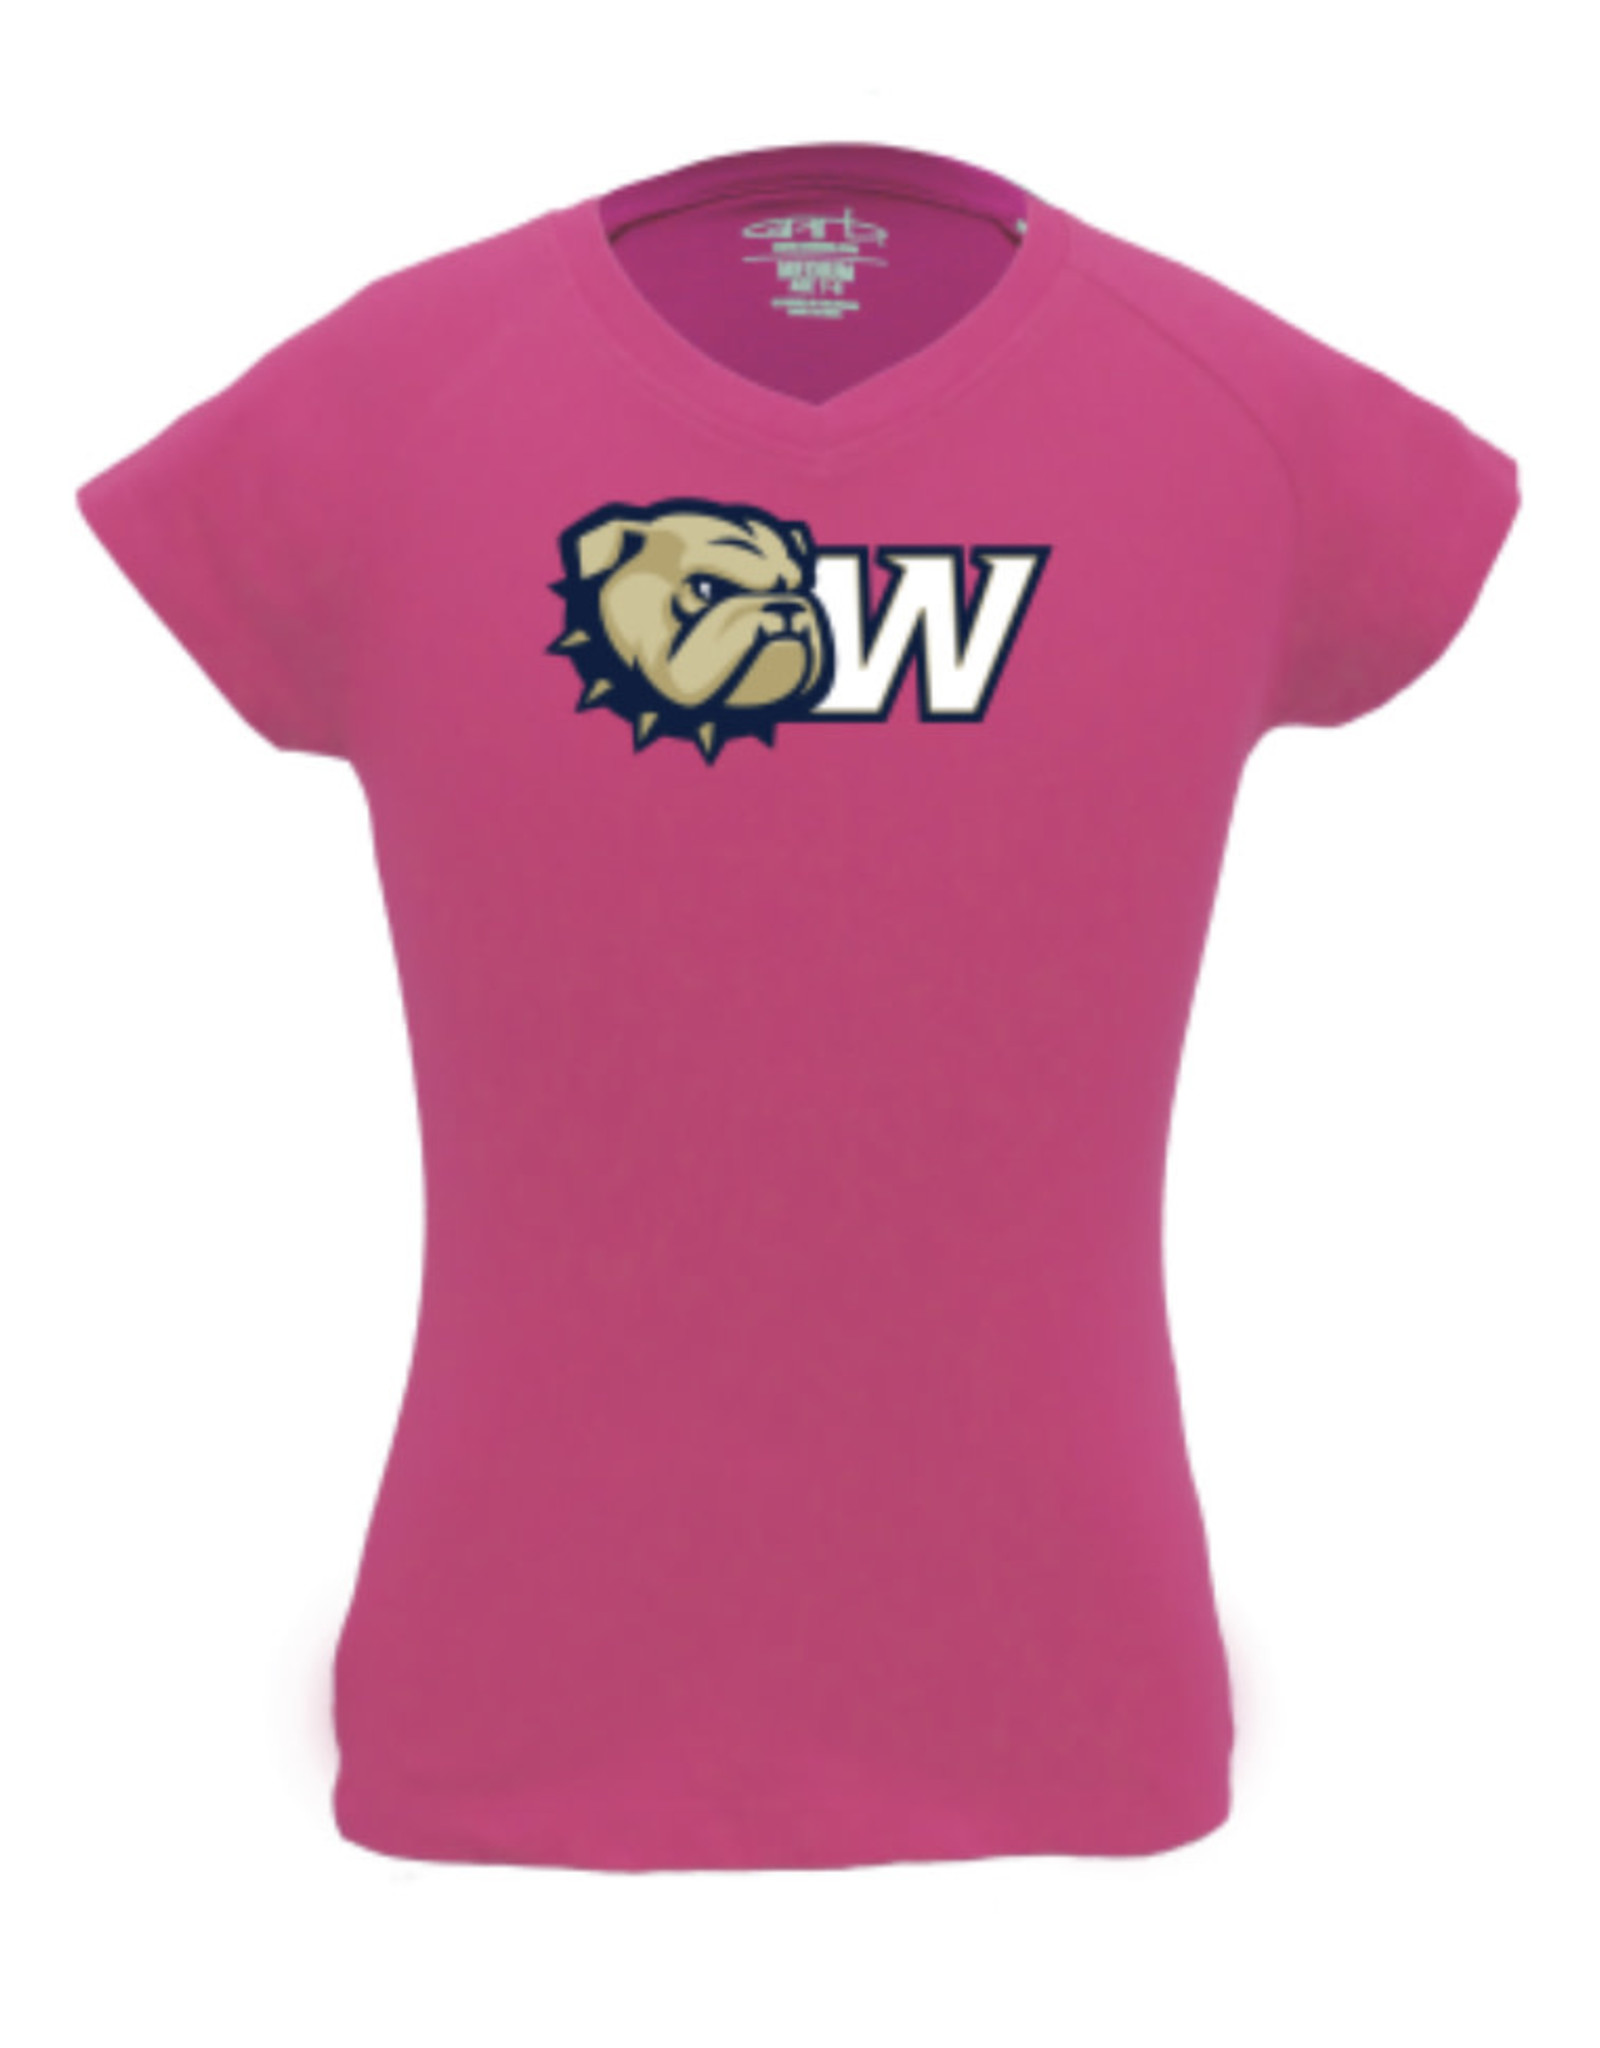 Garb Toddler Pink New Dog Head W Vickie Vneck SS Tee